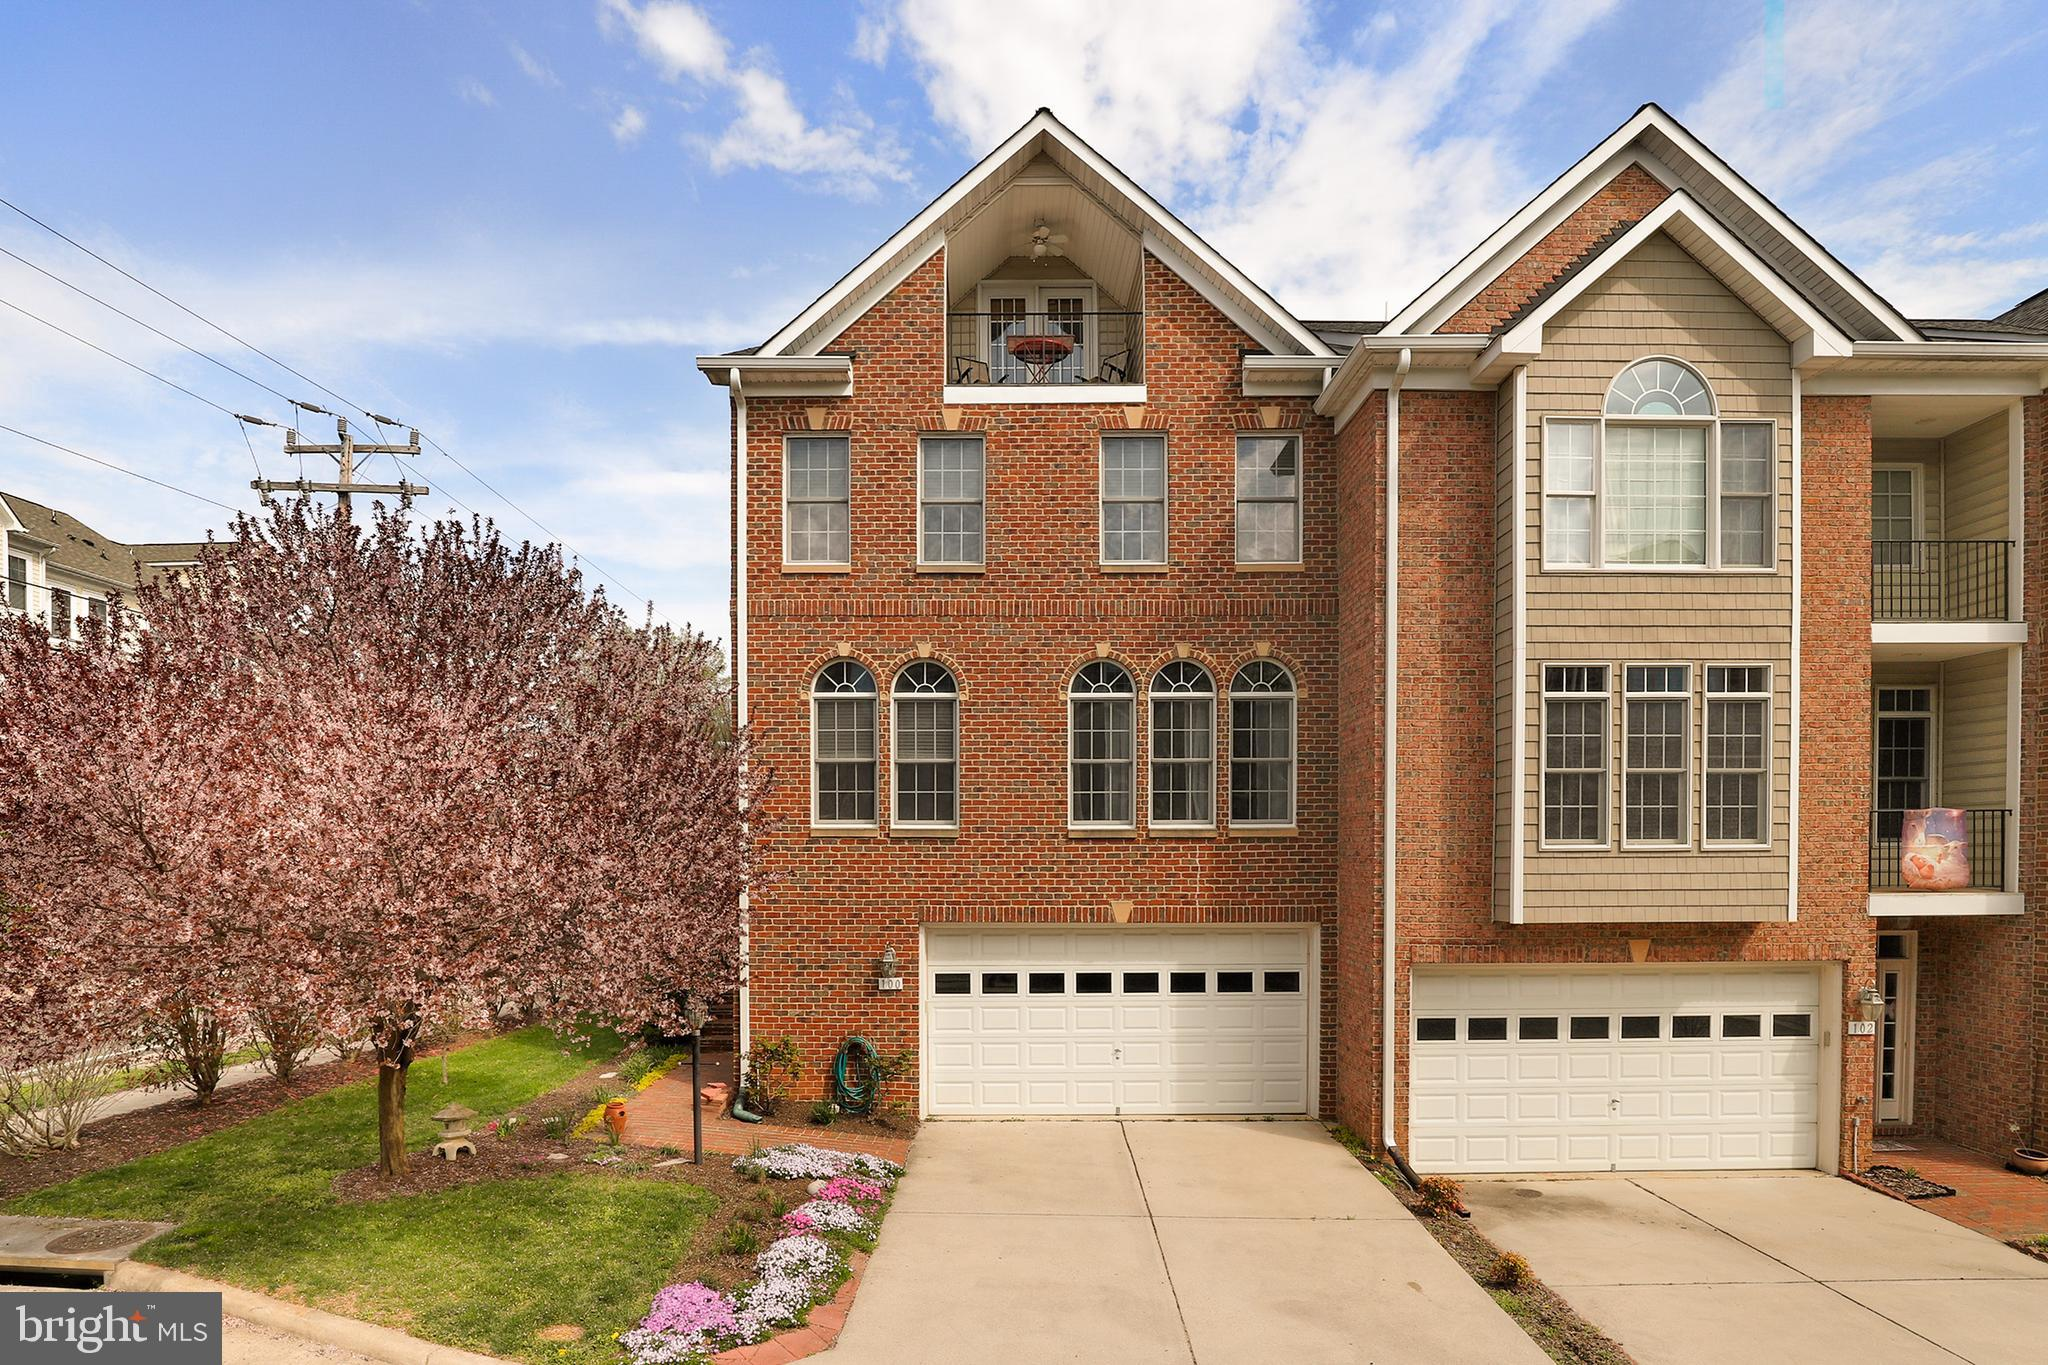 Immaculate 4 Level end unit luxury townhome in historic Occoquan! The oversized transom and palladian windows invite abundant natural light on all levels!  Attention to detail can be seen in every room to include tray and vaulted ceilings, hardwood floors throughout, remodeled bathrooms and recessed lights.  A chef's kitchen boasts stainless appliances, custom backsplash and easy access to deck with a retractable awning- perfect for lounging or dining al fresco!  Main level has office or potential legal 4th bedroom!  Luxurious master offers well-organized walk-in closet & bathroom with tub & dual vanities.  Upper level loft features a darling & private veranda and full bath. Finished recreation room has walk-out to the covered patio and rear yard. Updates include~ NEW A/C units & evaporator, MBA frameless glass shower & quartz countertop, front entry door/sidelites/storm door. This enclave of homes DOES NOT have HOA.   Simply Impressive!